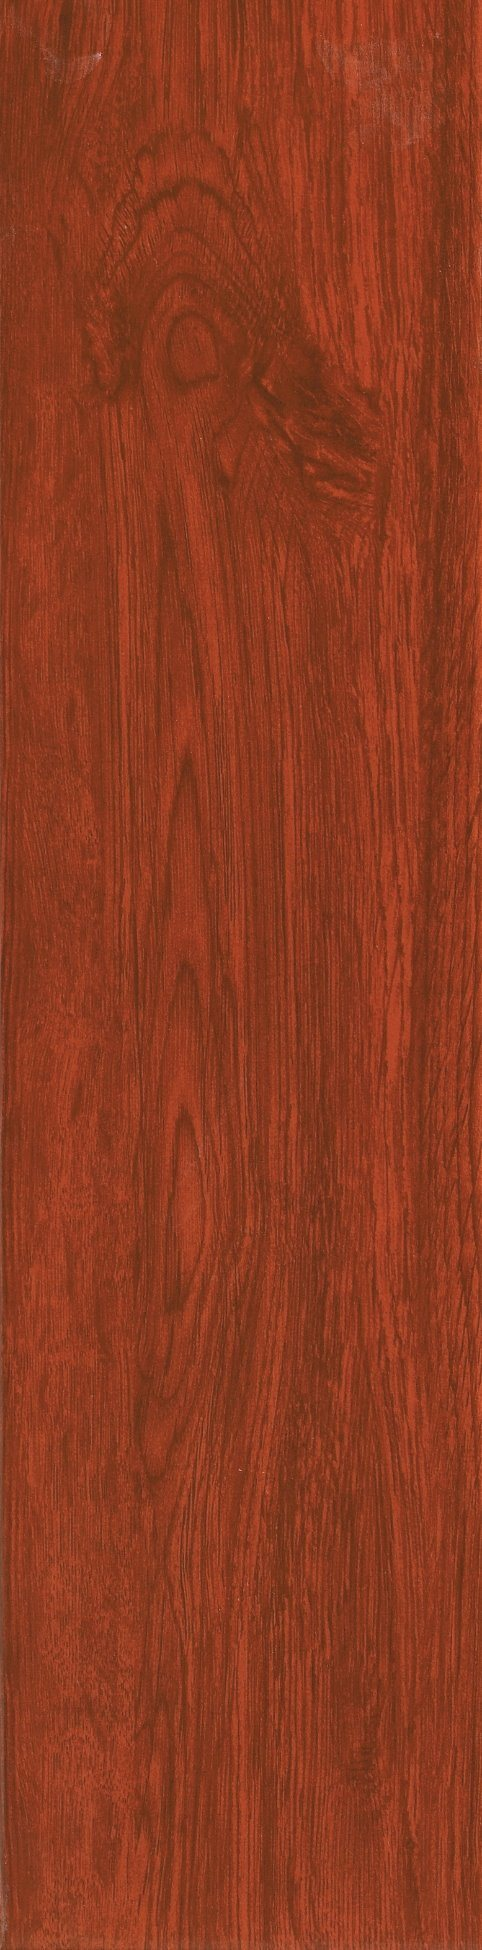 China wood look classic style glazed porcelain tile ceramic tiles wood look classic style glazed porcelain tile ceramic tiles deep colour dailygadgetfo Image collections